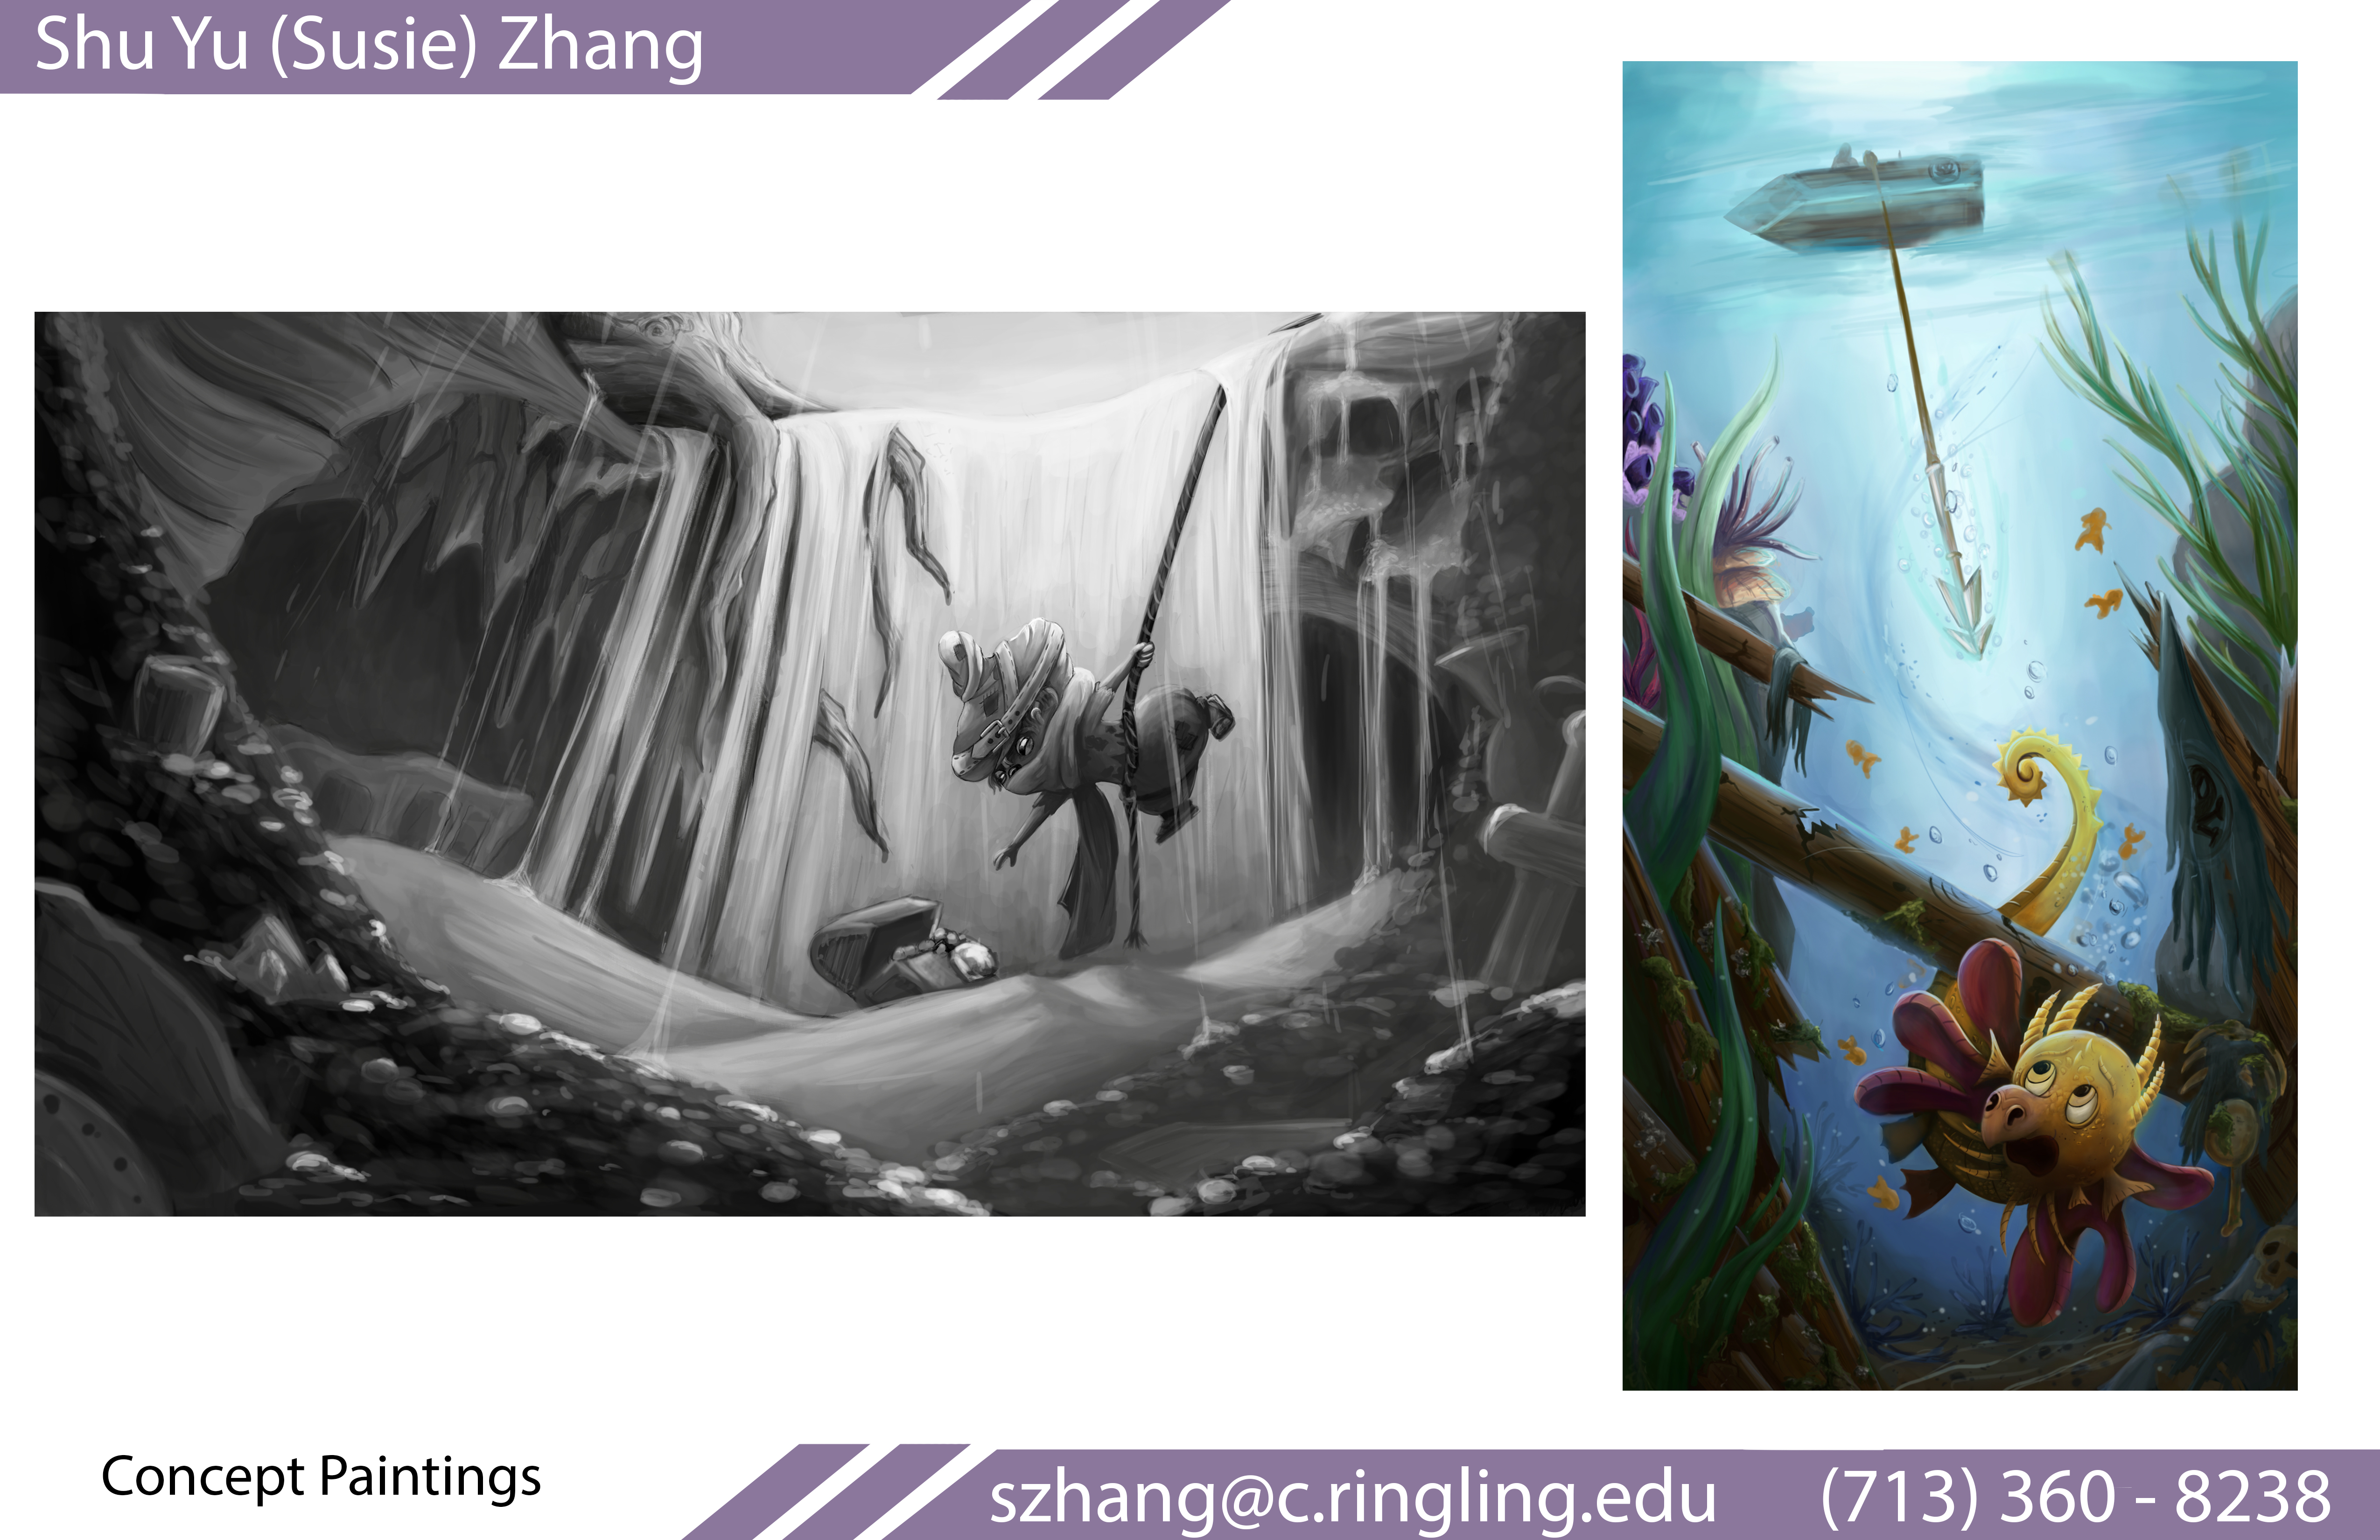 Concept Paintings